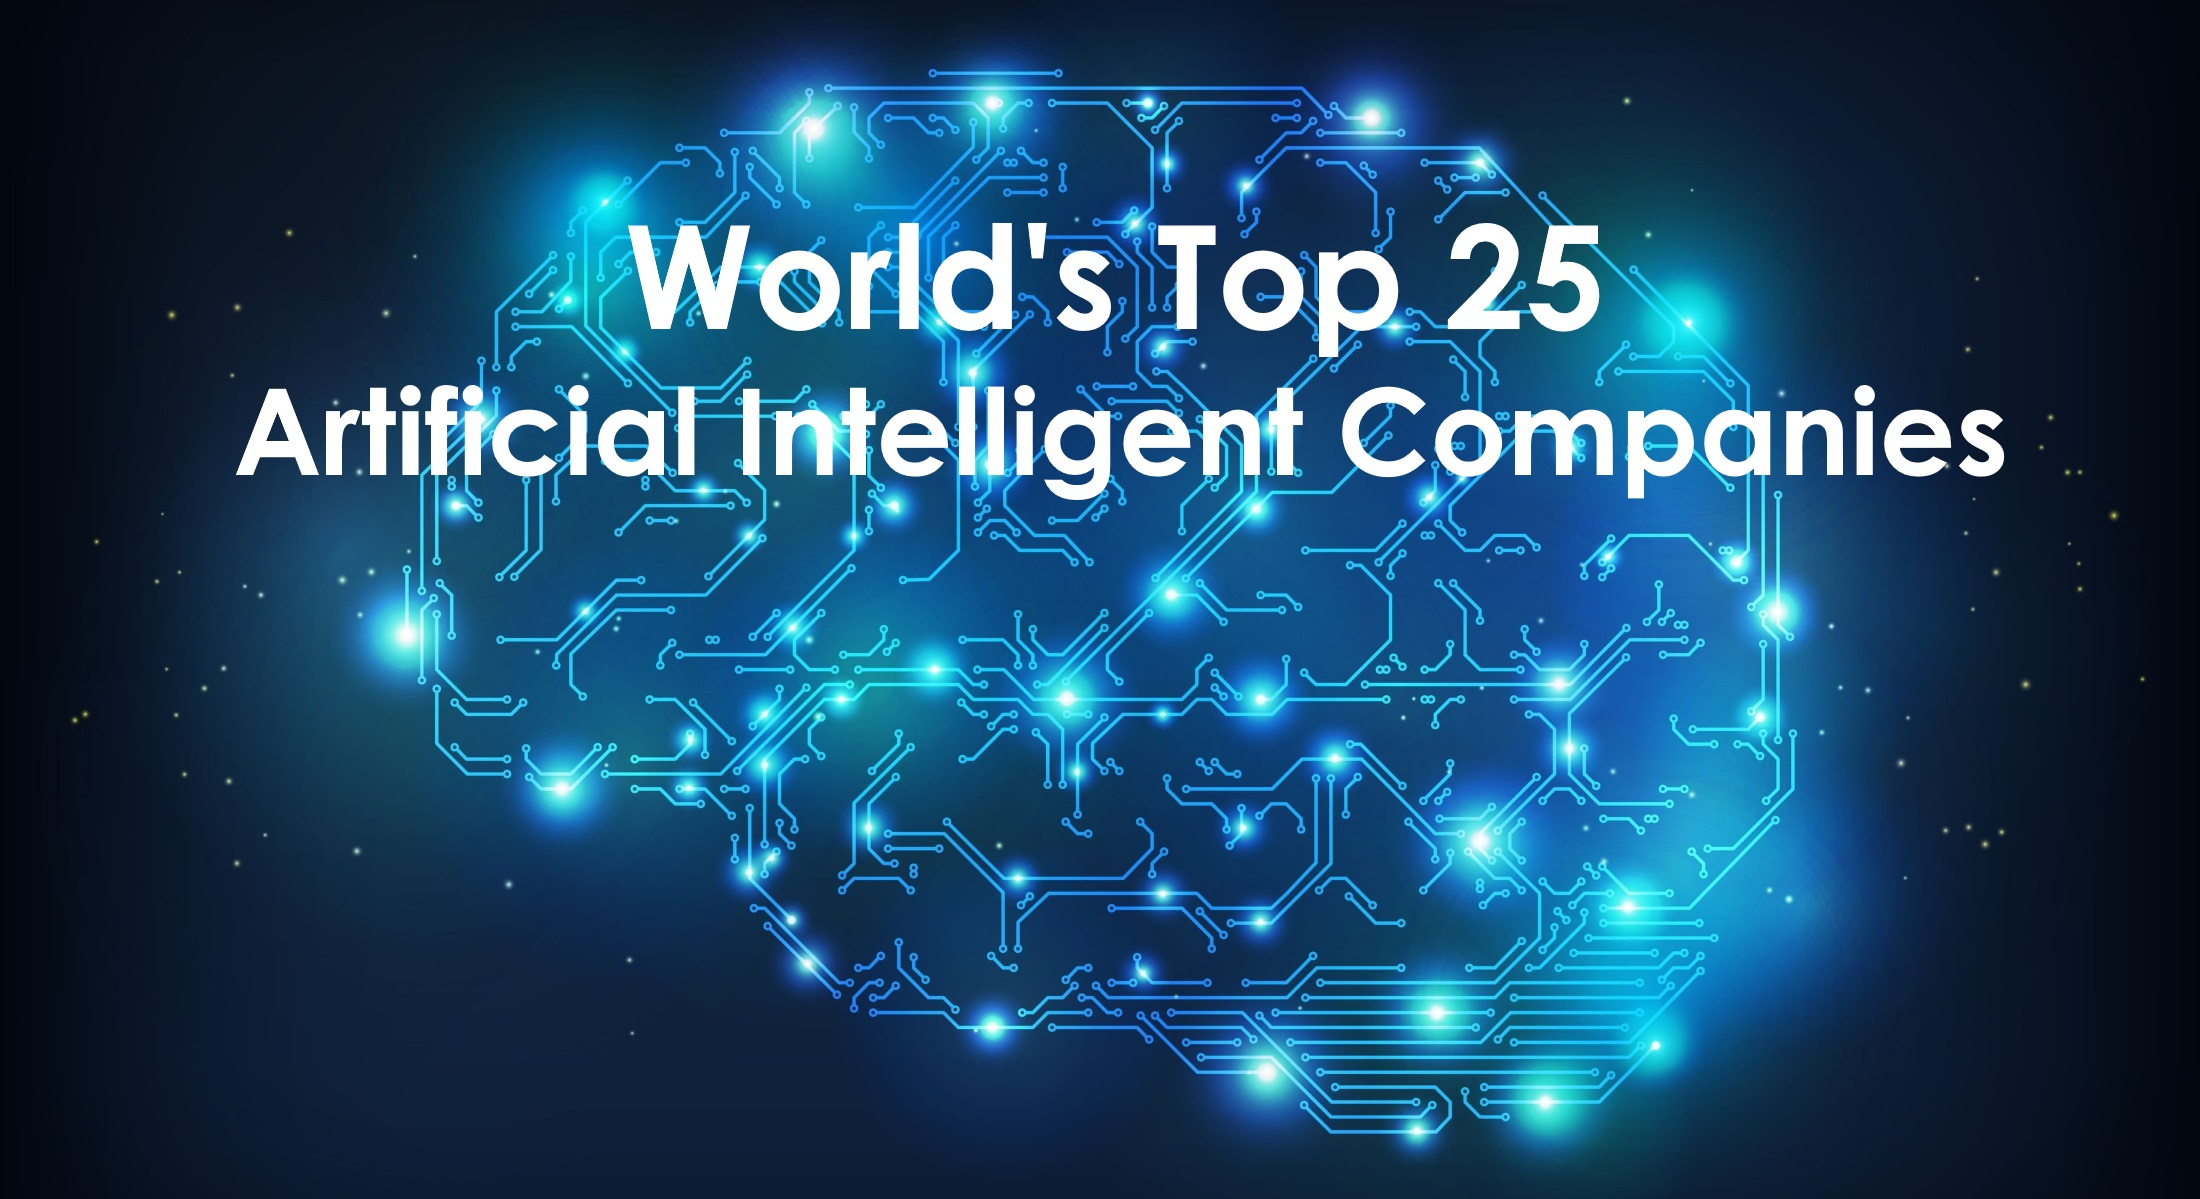 World's Top 25 Artificial Intelligence Companies - Algorithm